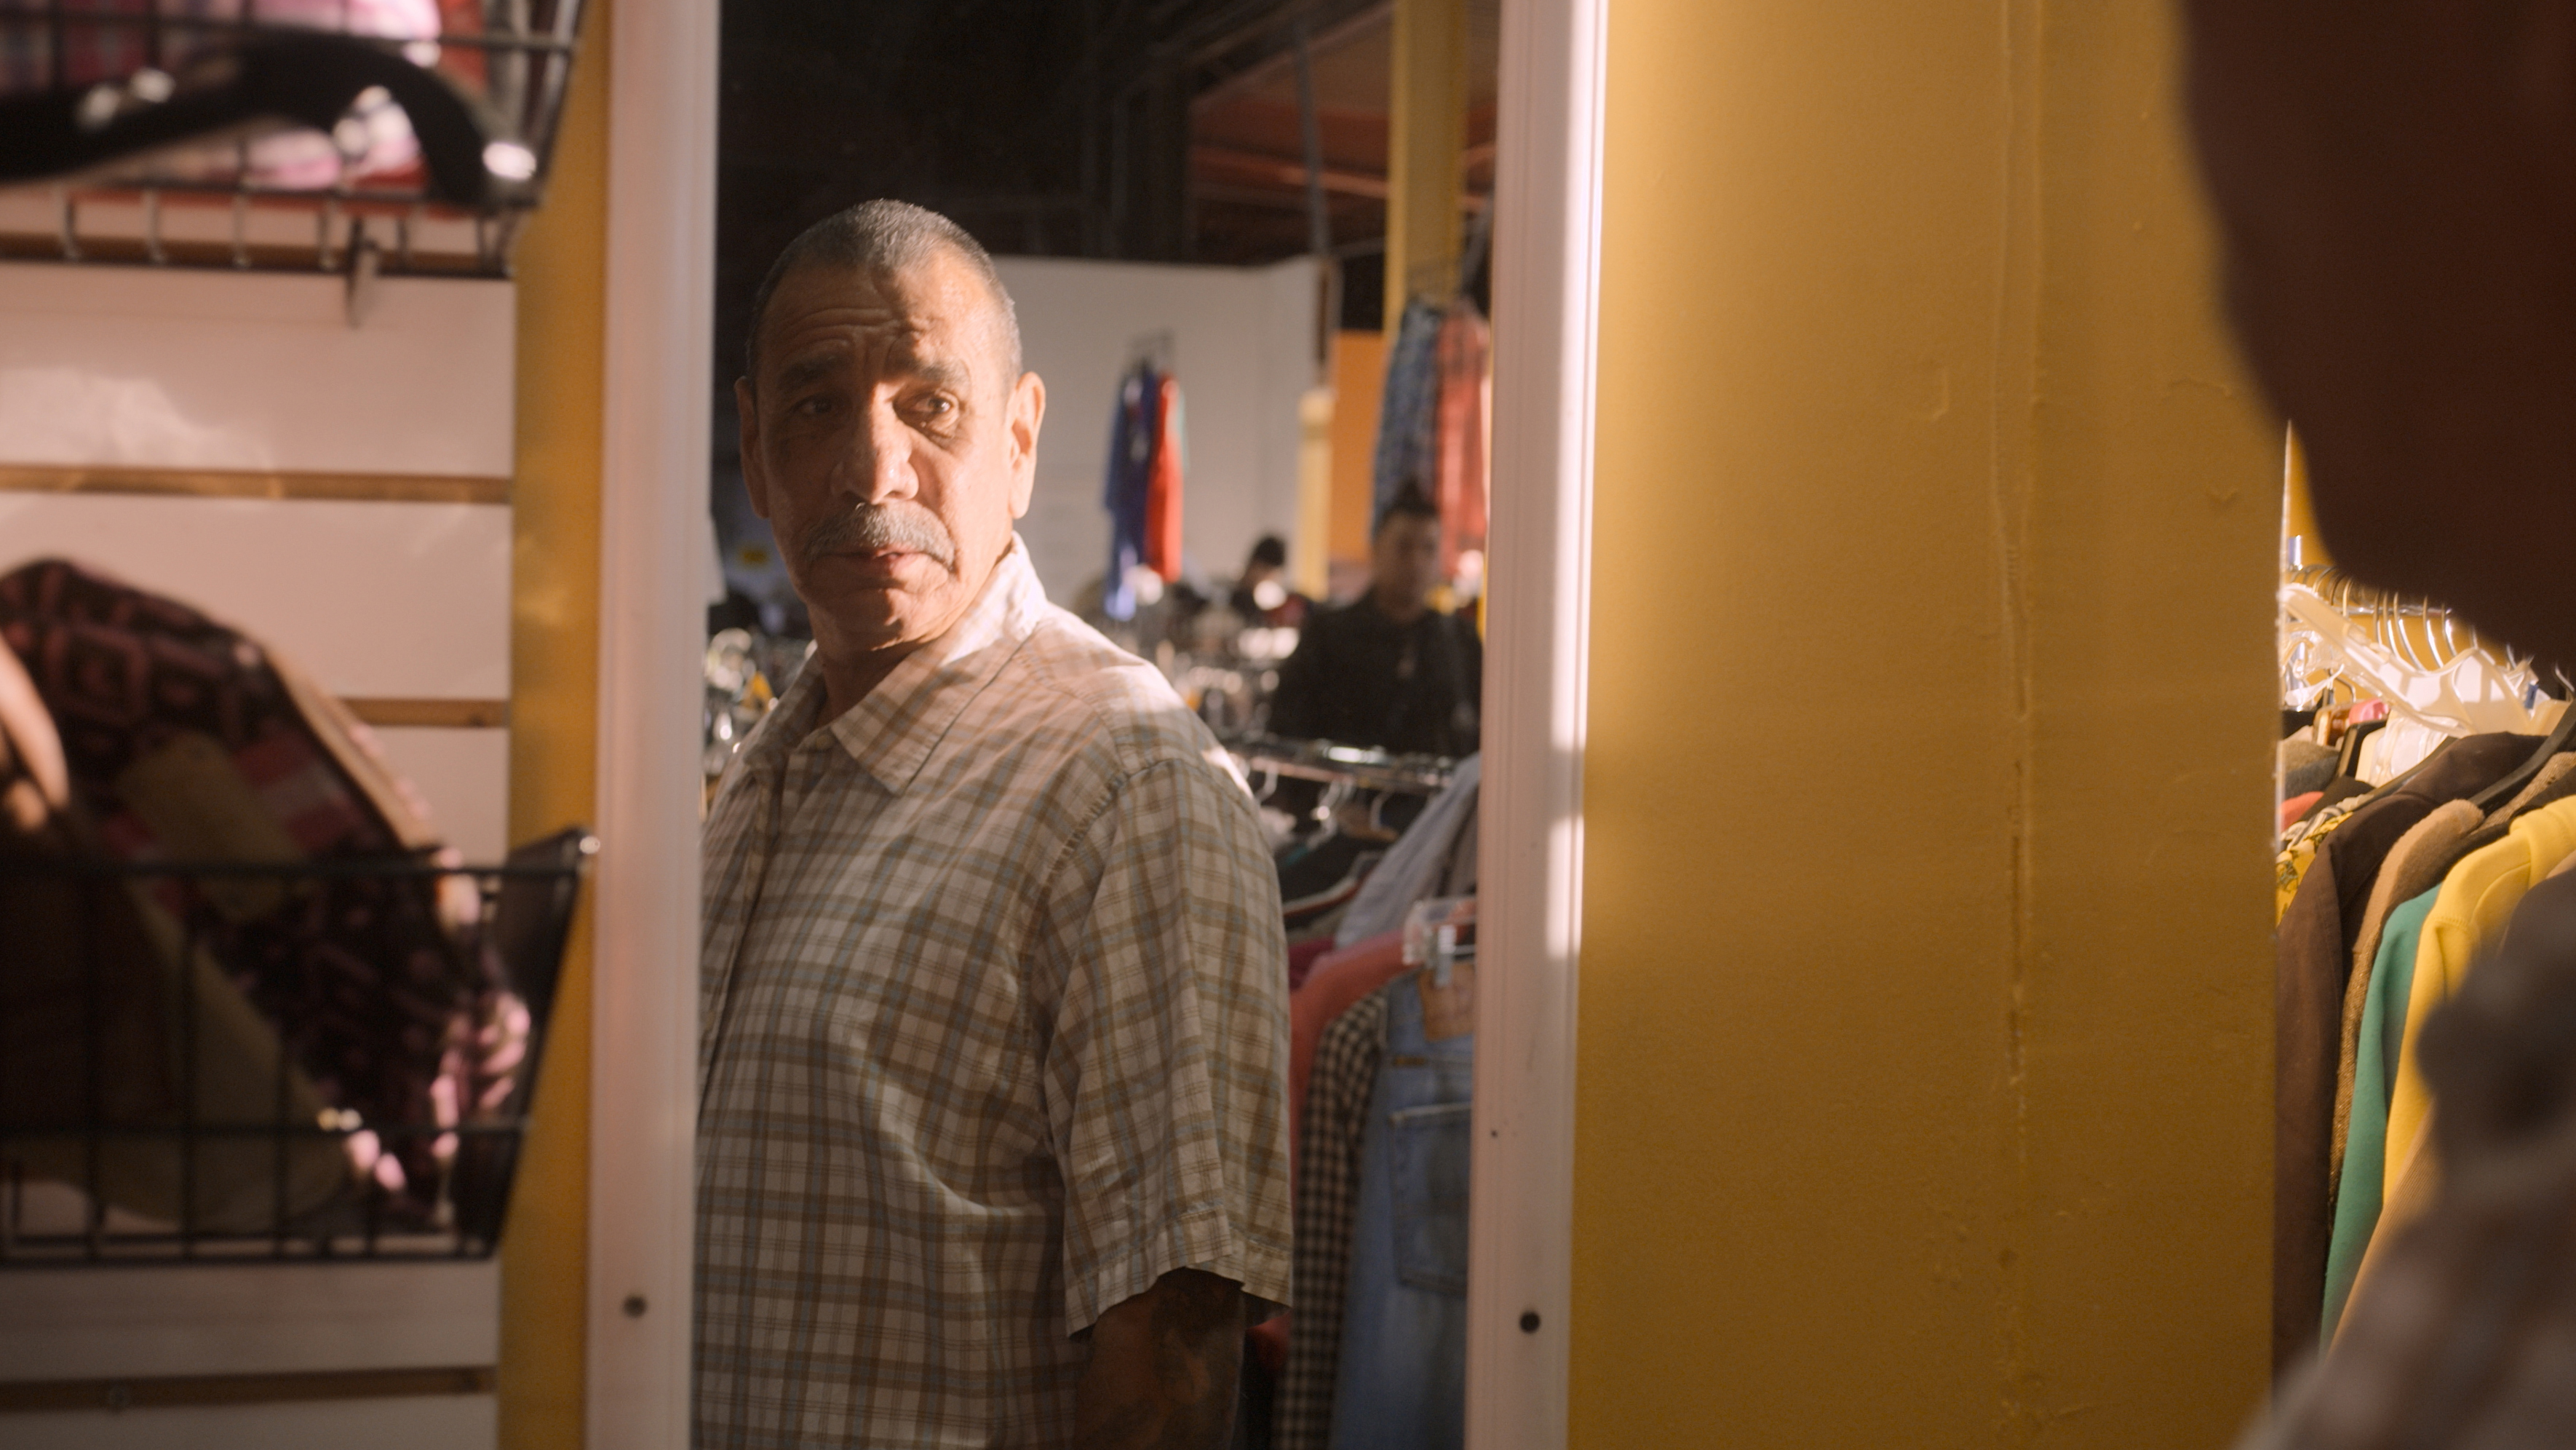 Rudy, who goes shopping after being released from 40 years in prison, in Worn Stories.